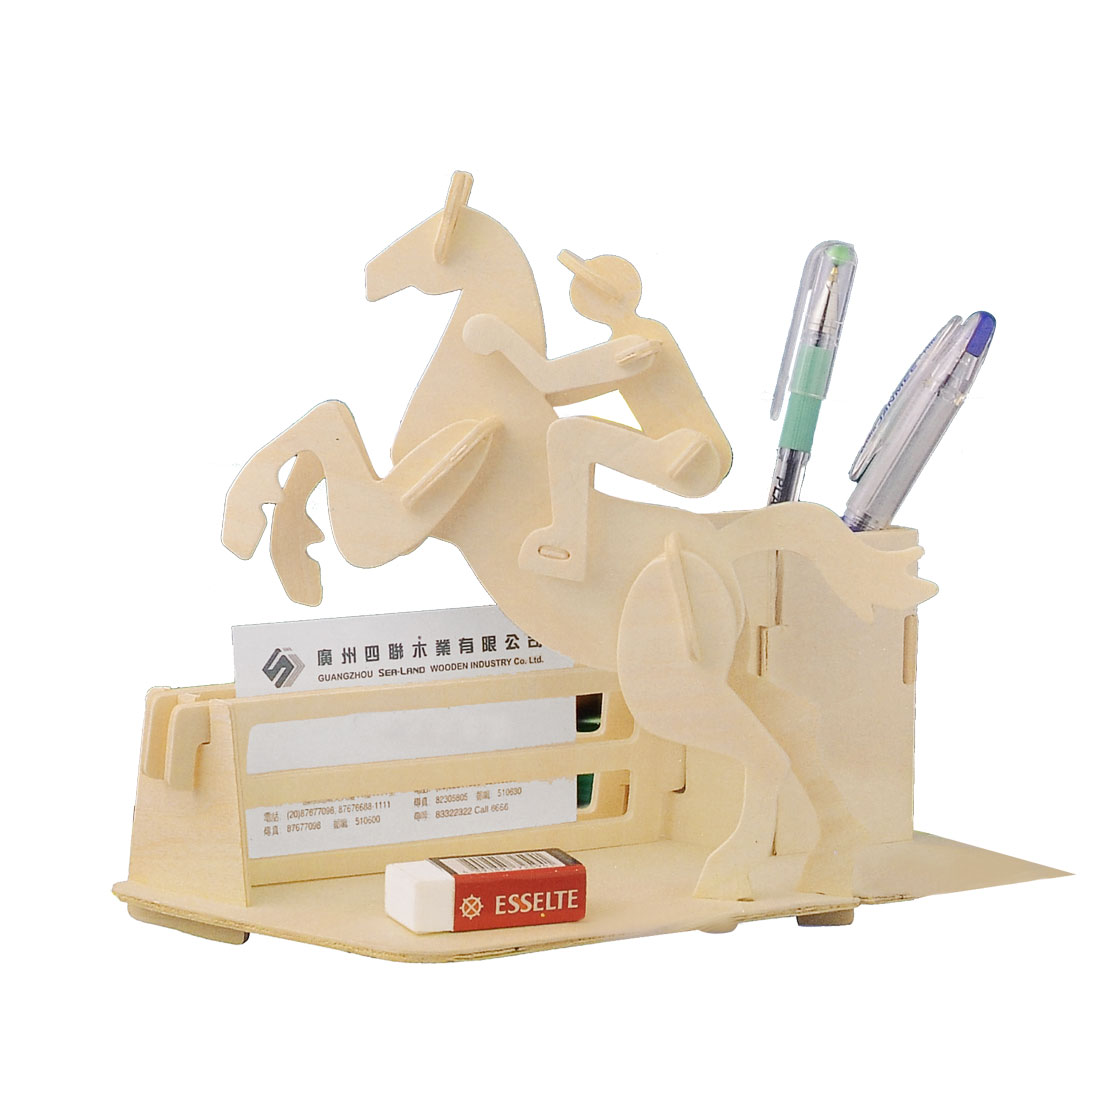 3D Horse Riding Pen Holder Woodcraft Construction Kit DIY Assembling Toy